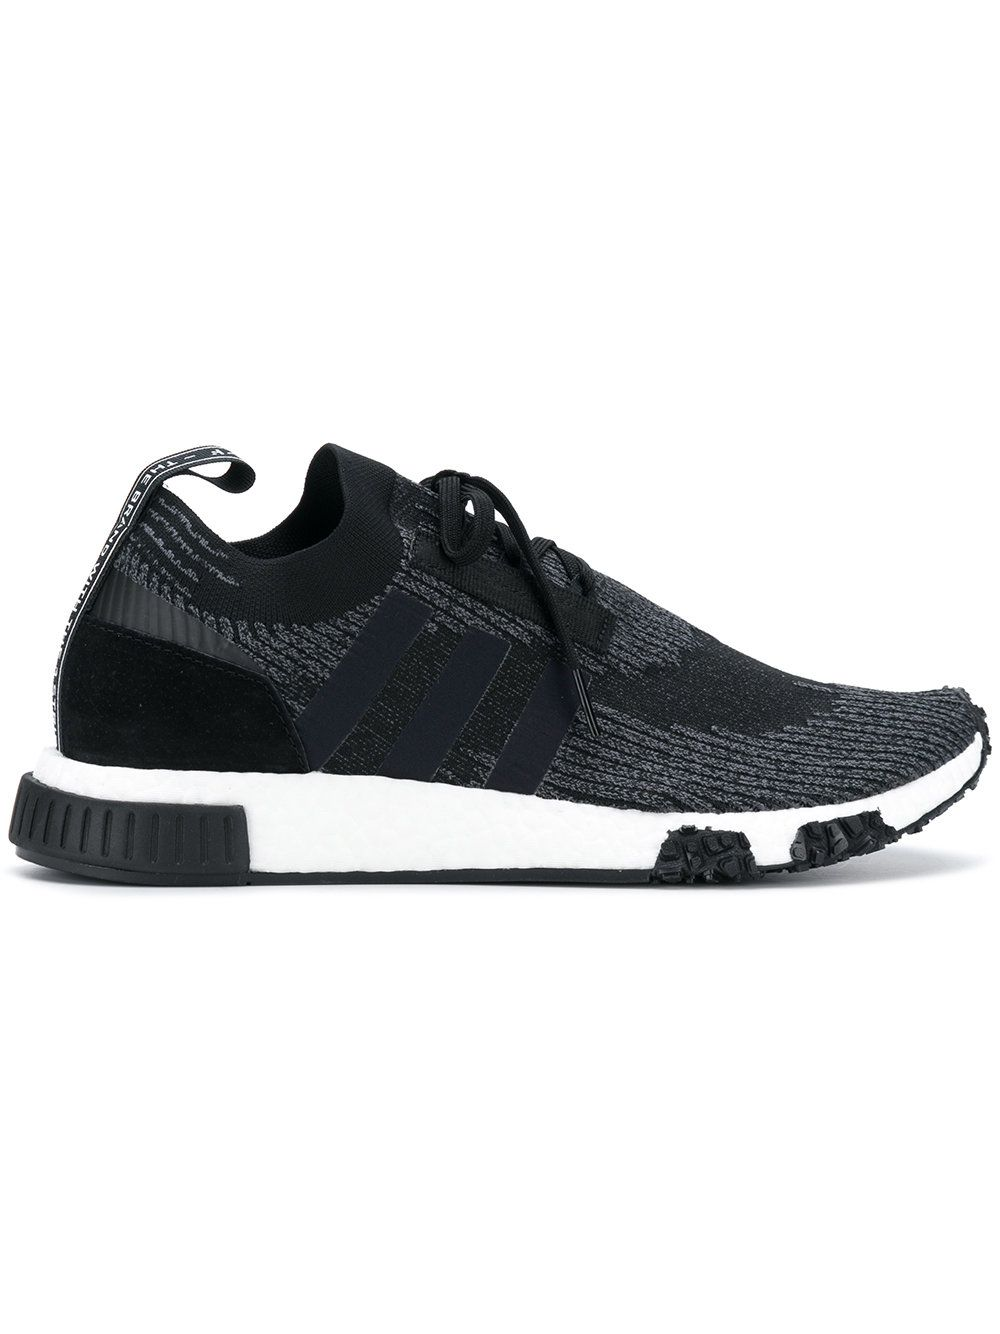 save off f9b07 65f58 Adidas Lace-up sock sneakers